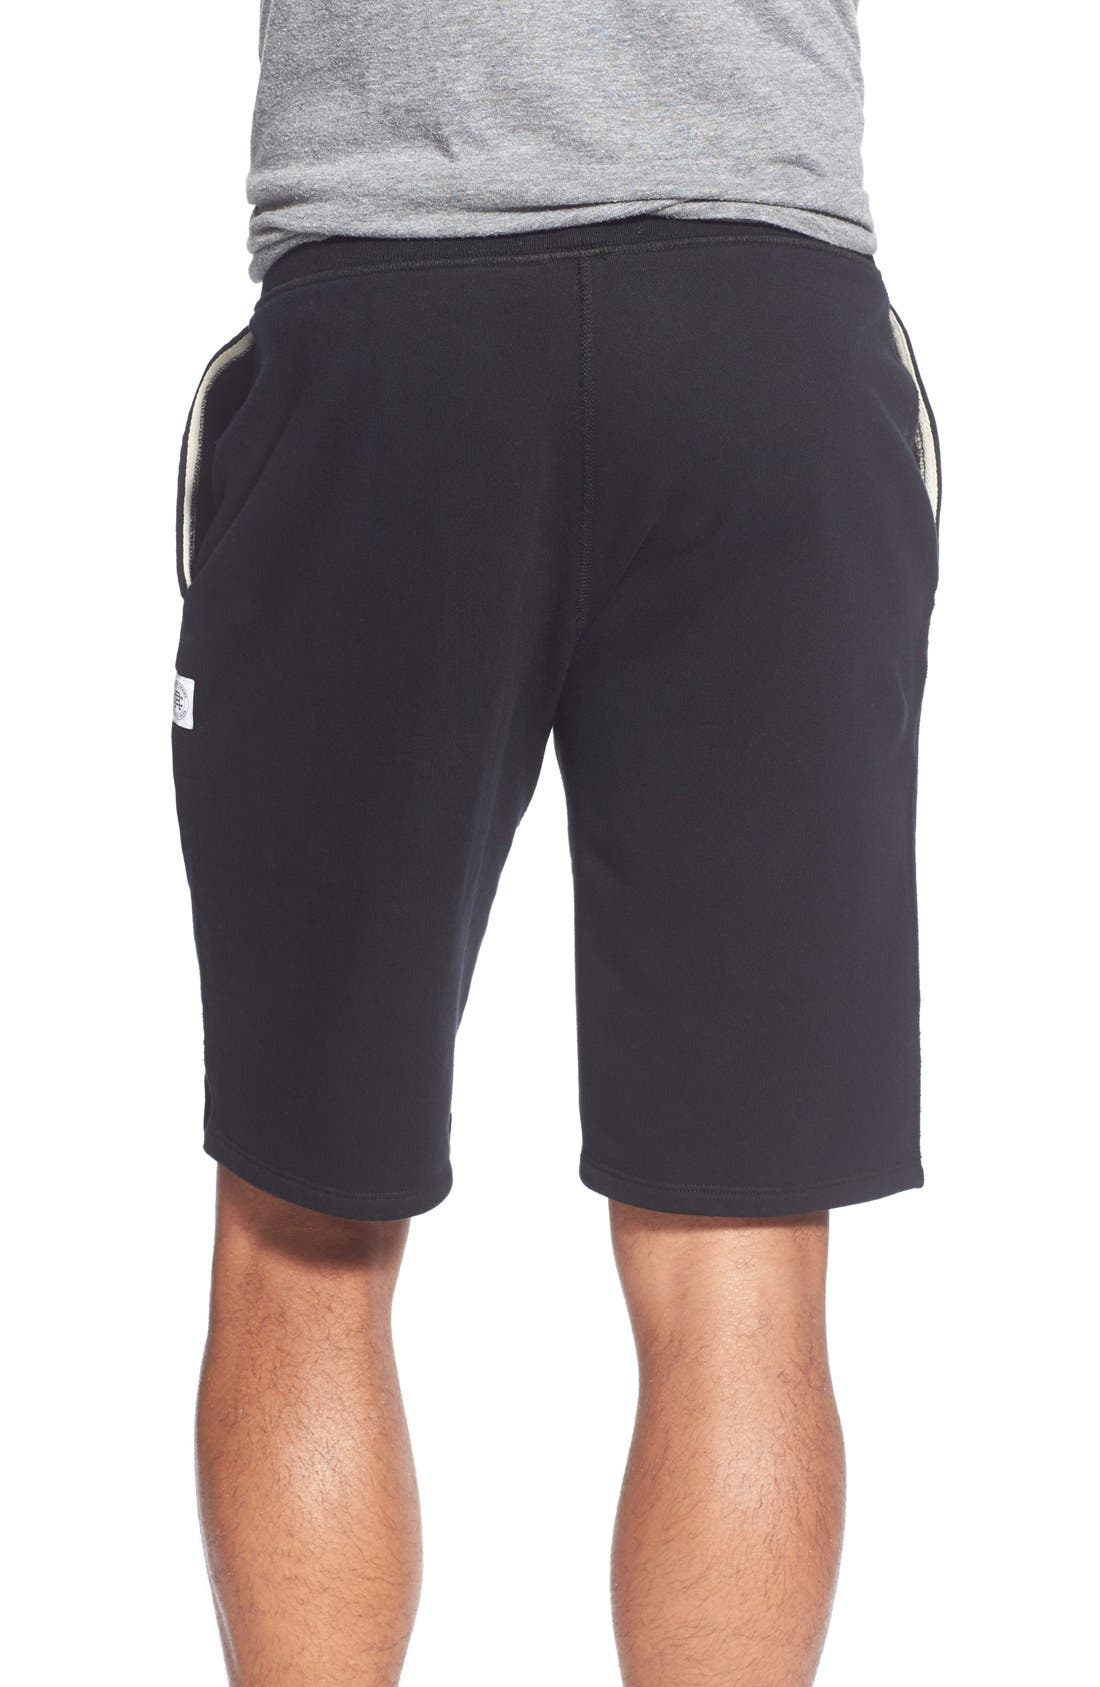 Terry Cotton Sweat Shorts,                             Alternate thumbnail 5, color,                             001